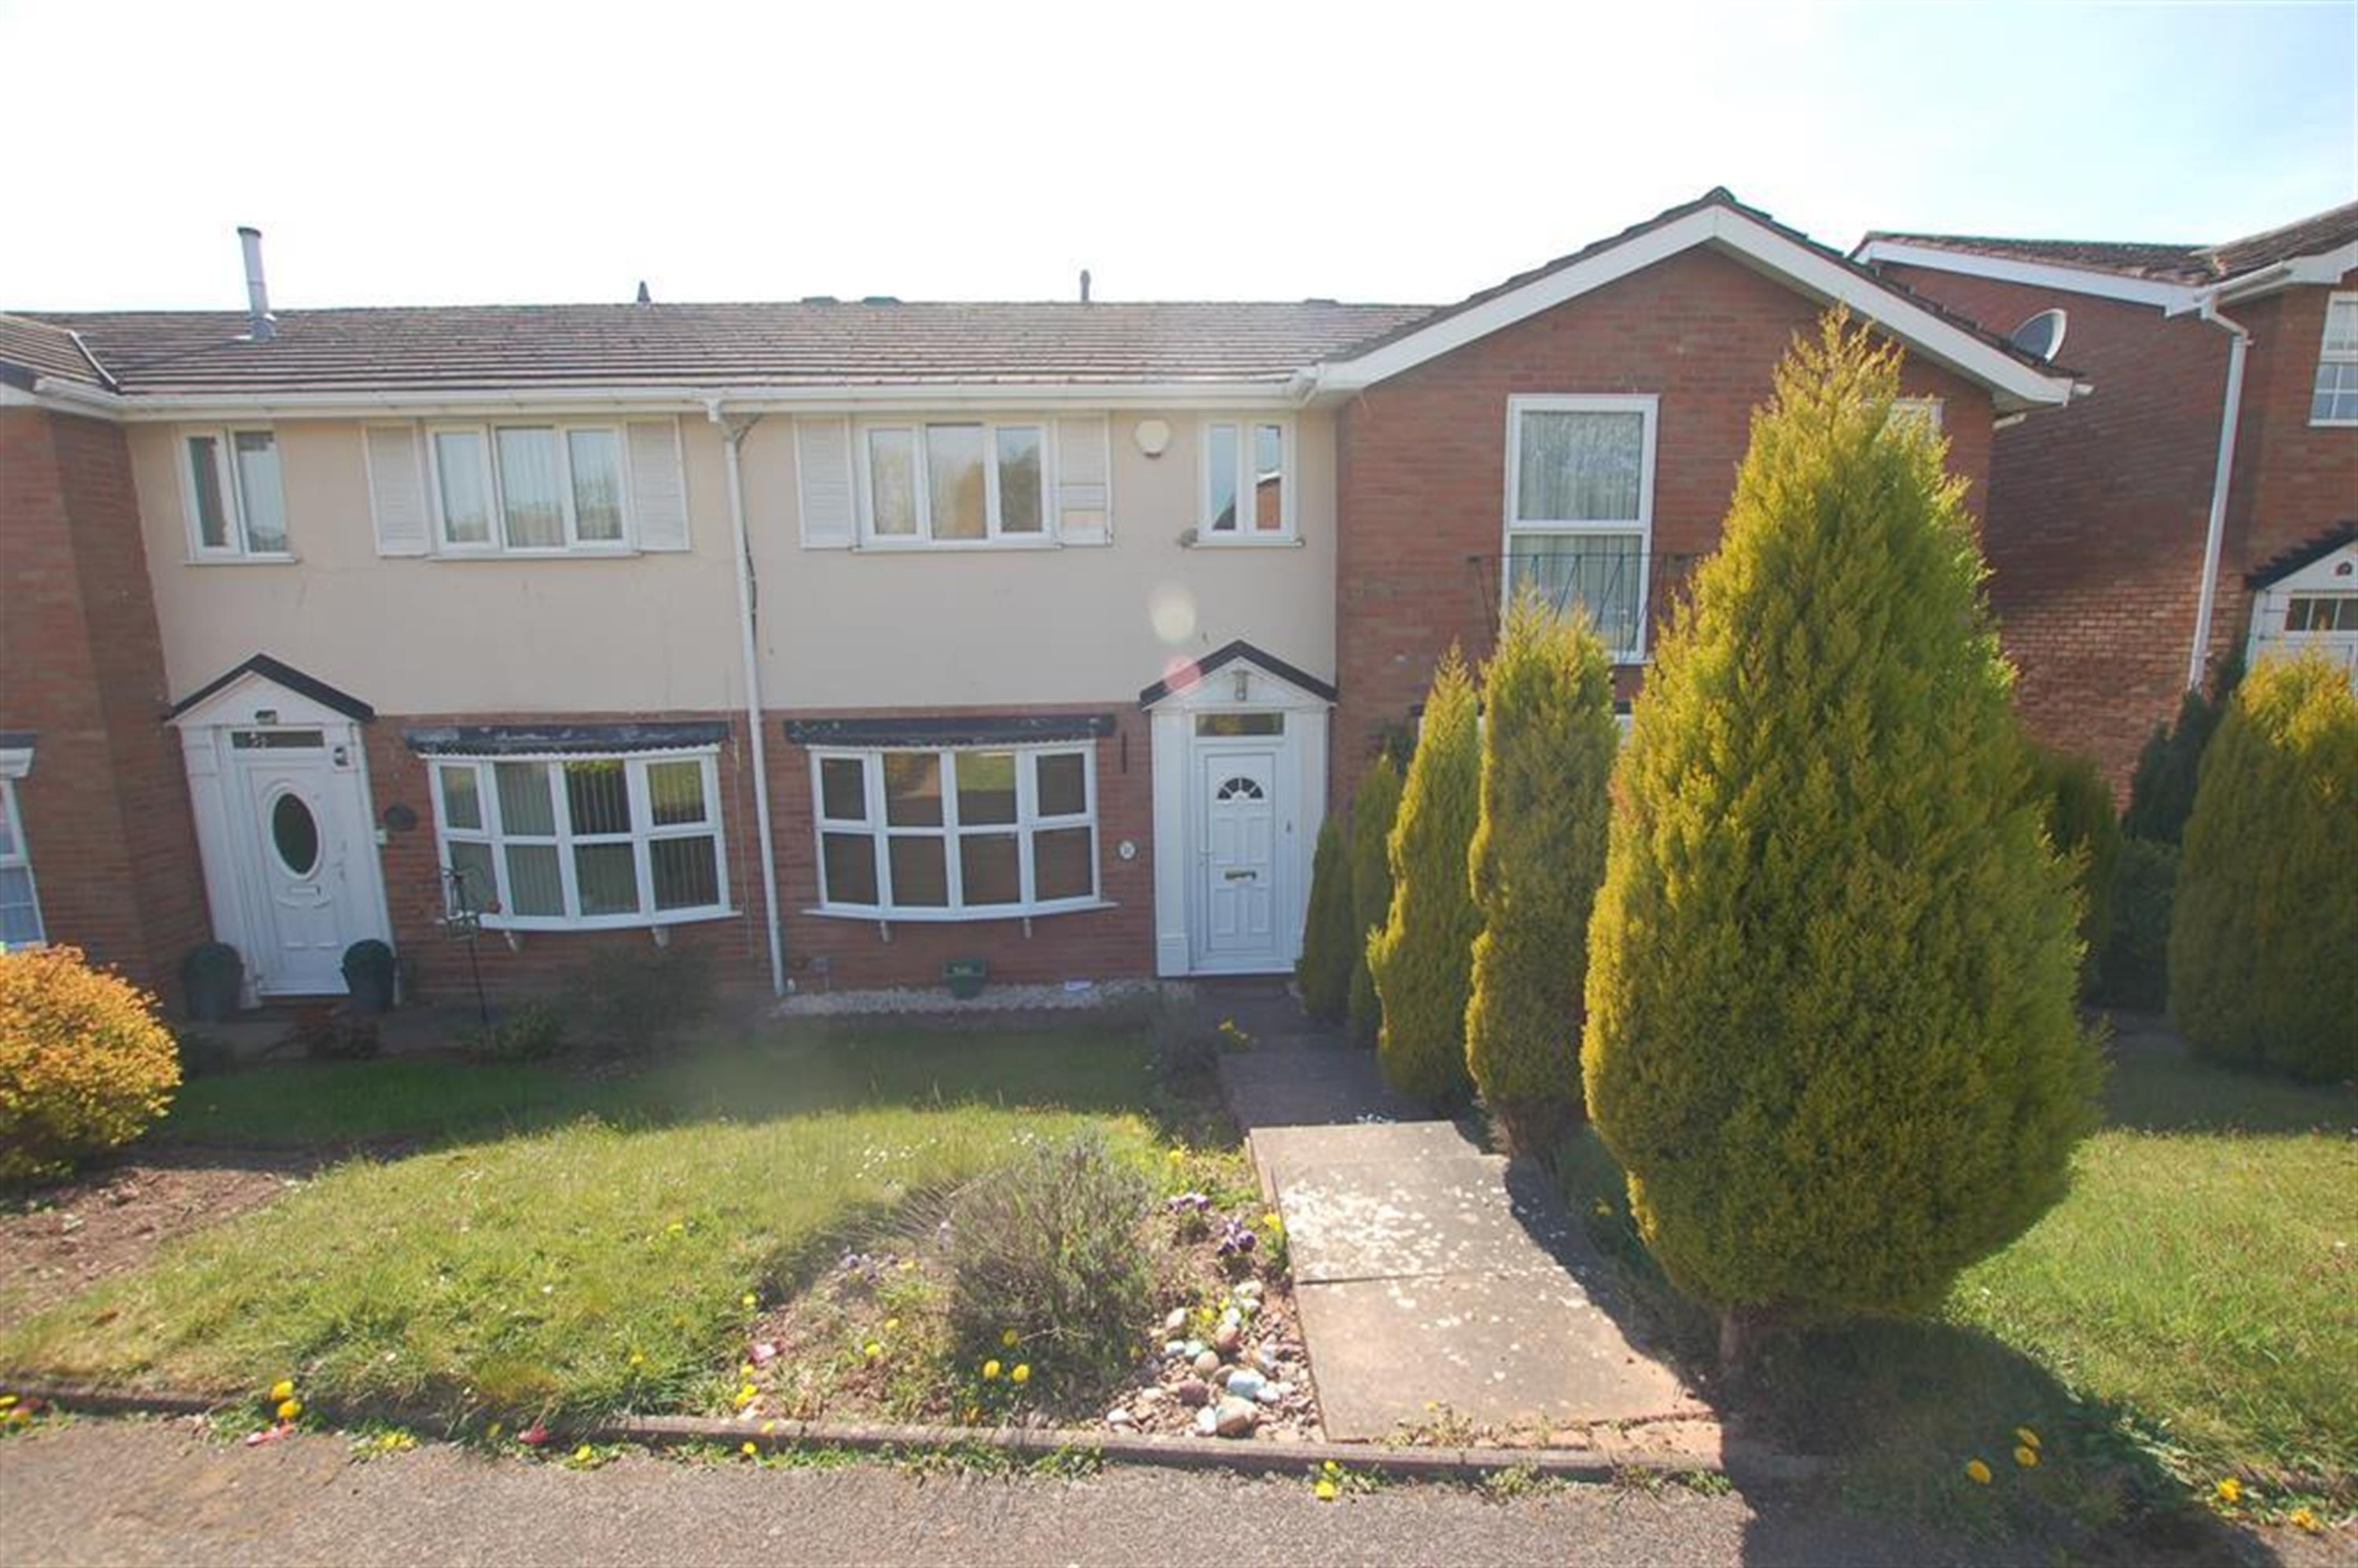 Keyes Drive, Kingswinford, DY6 7RT